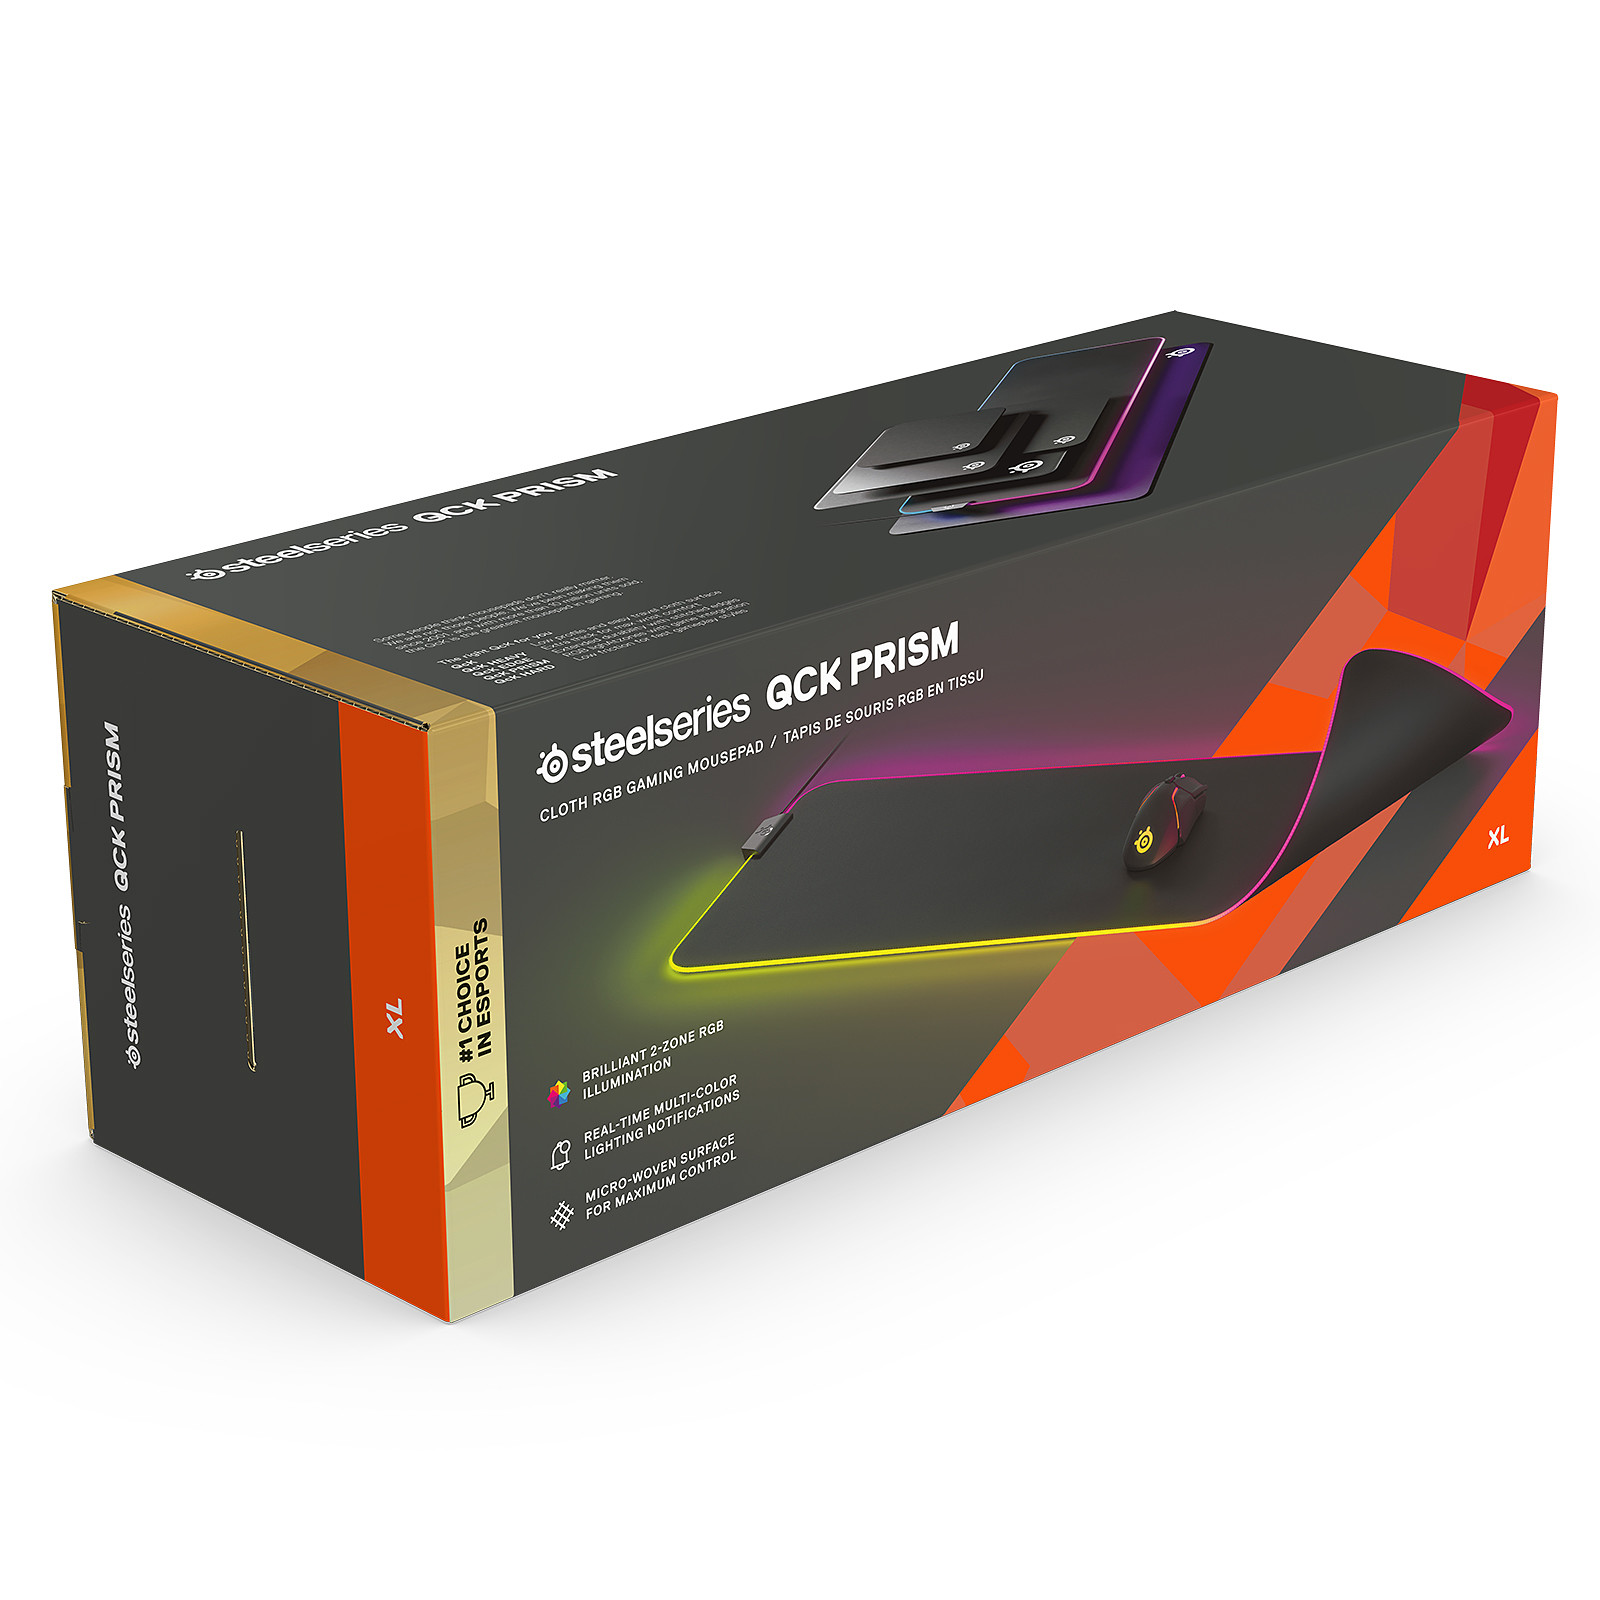 steelseries qck prism cloth extra large